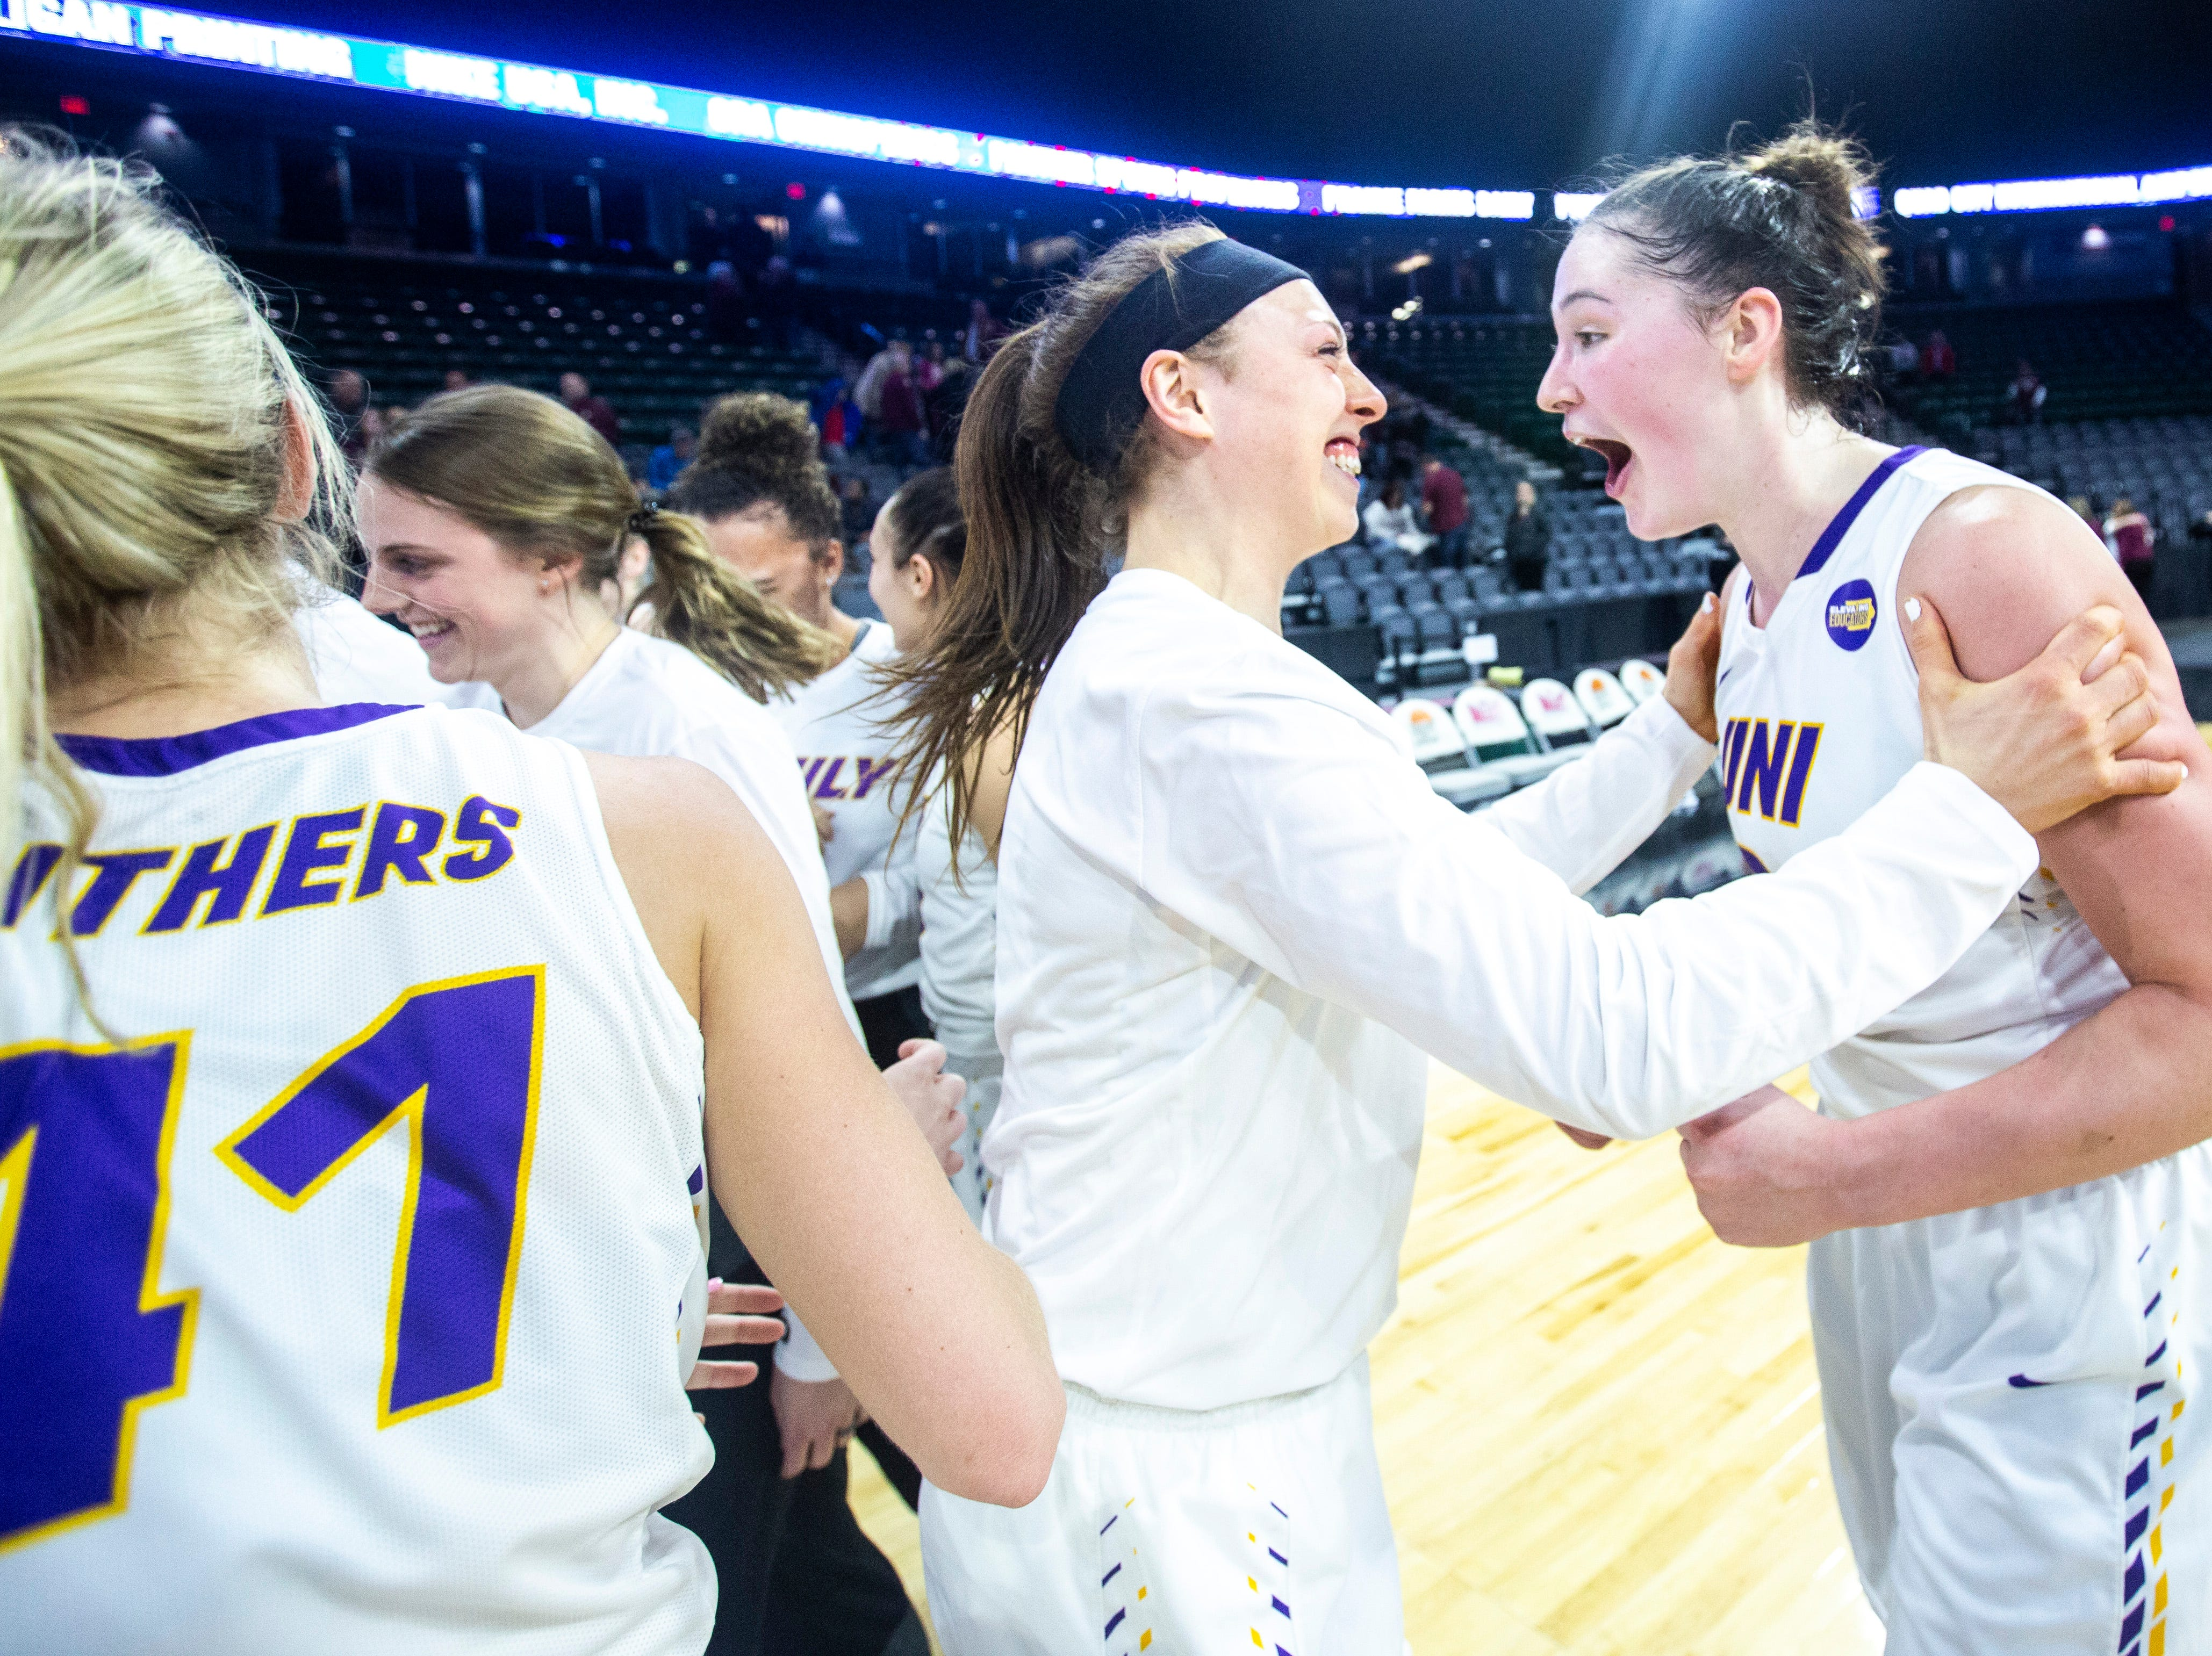 Northern Iowa Panthers celebrate after a NCAA Missouri Valley Conference women's basketball quarterfinal tournament game against Southern Illinois, Friday, March 15, 2019, at the TaxSlayer Center in Moline, Illinois. Northern Iowa won, 66-63.